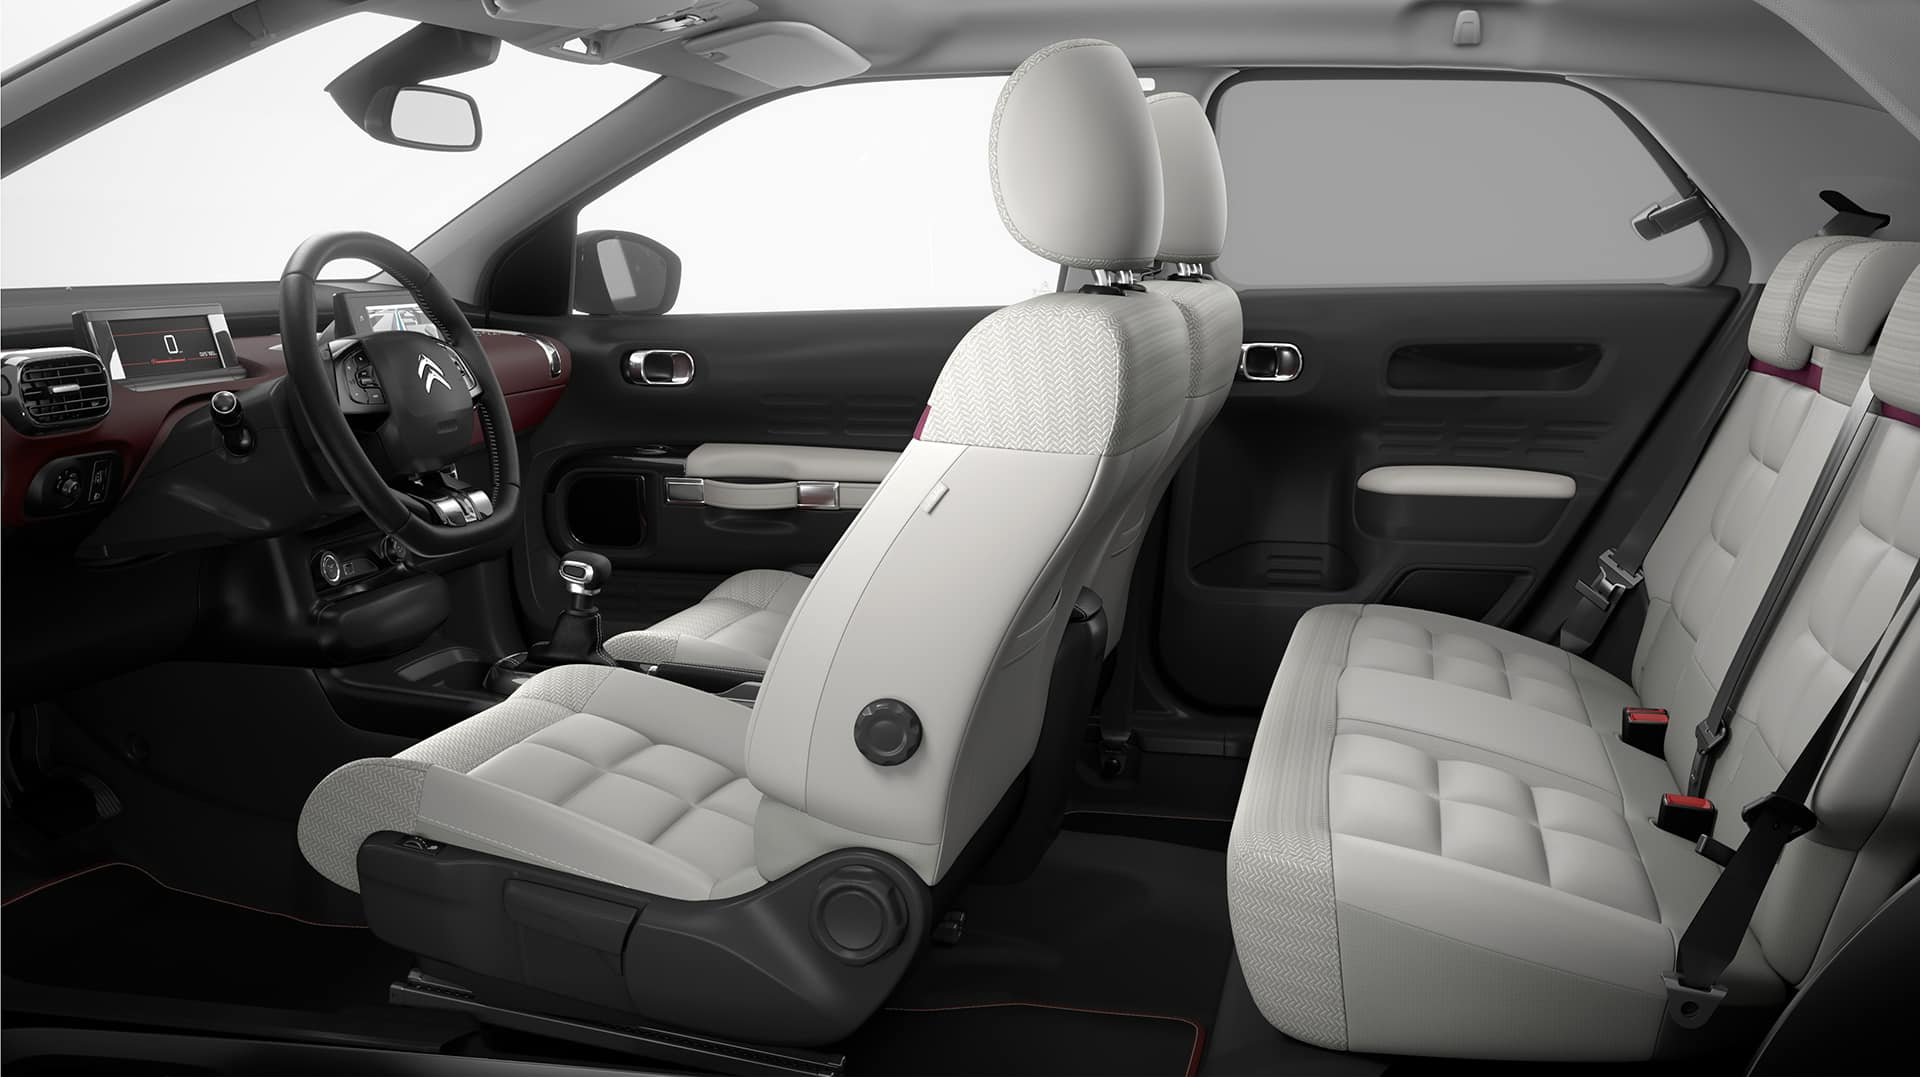 Citroën C4 Cactus bumps up its comfort 1